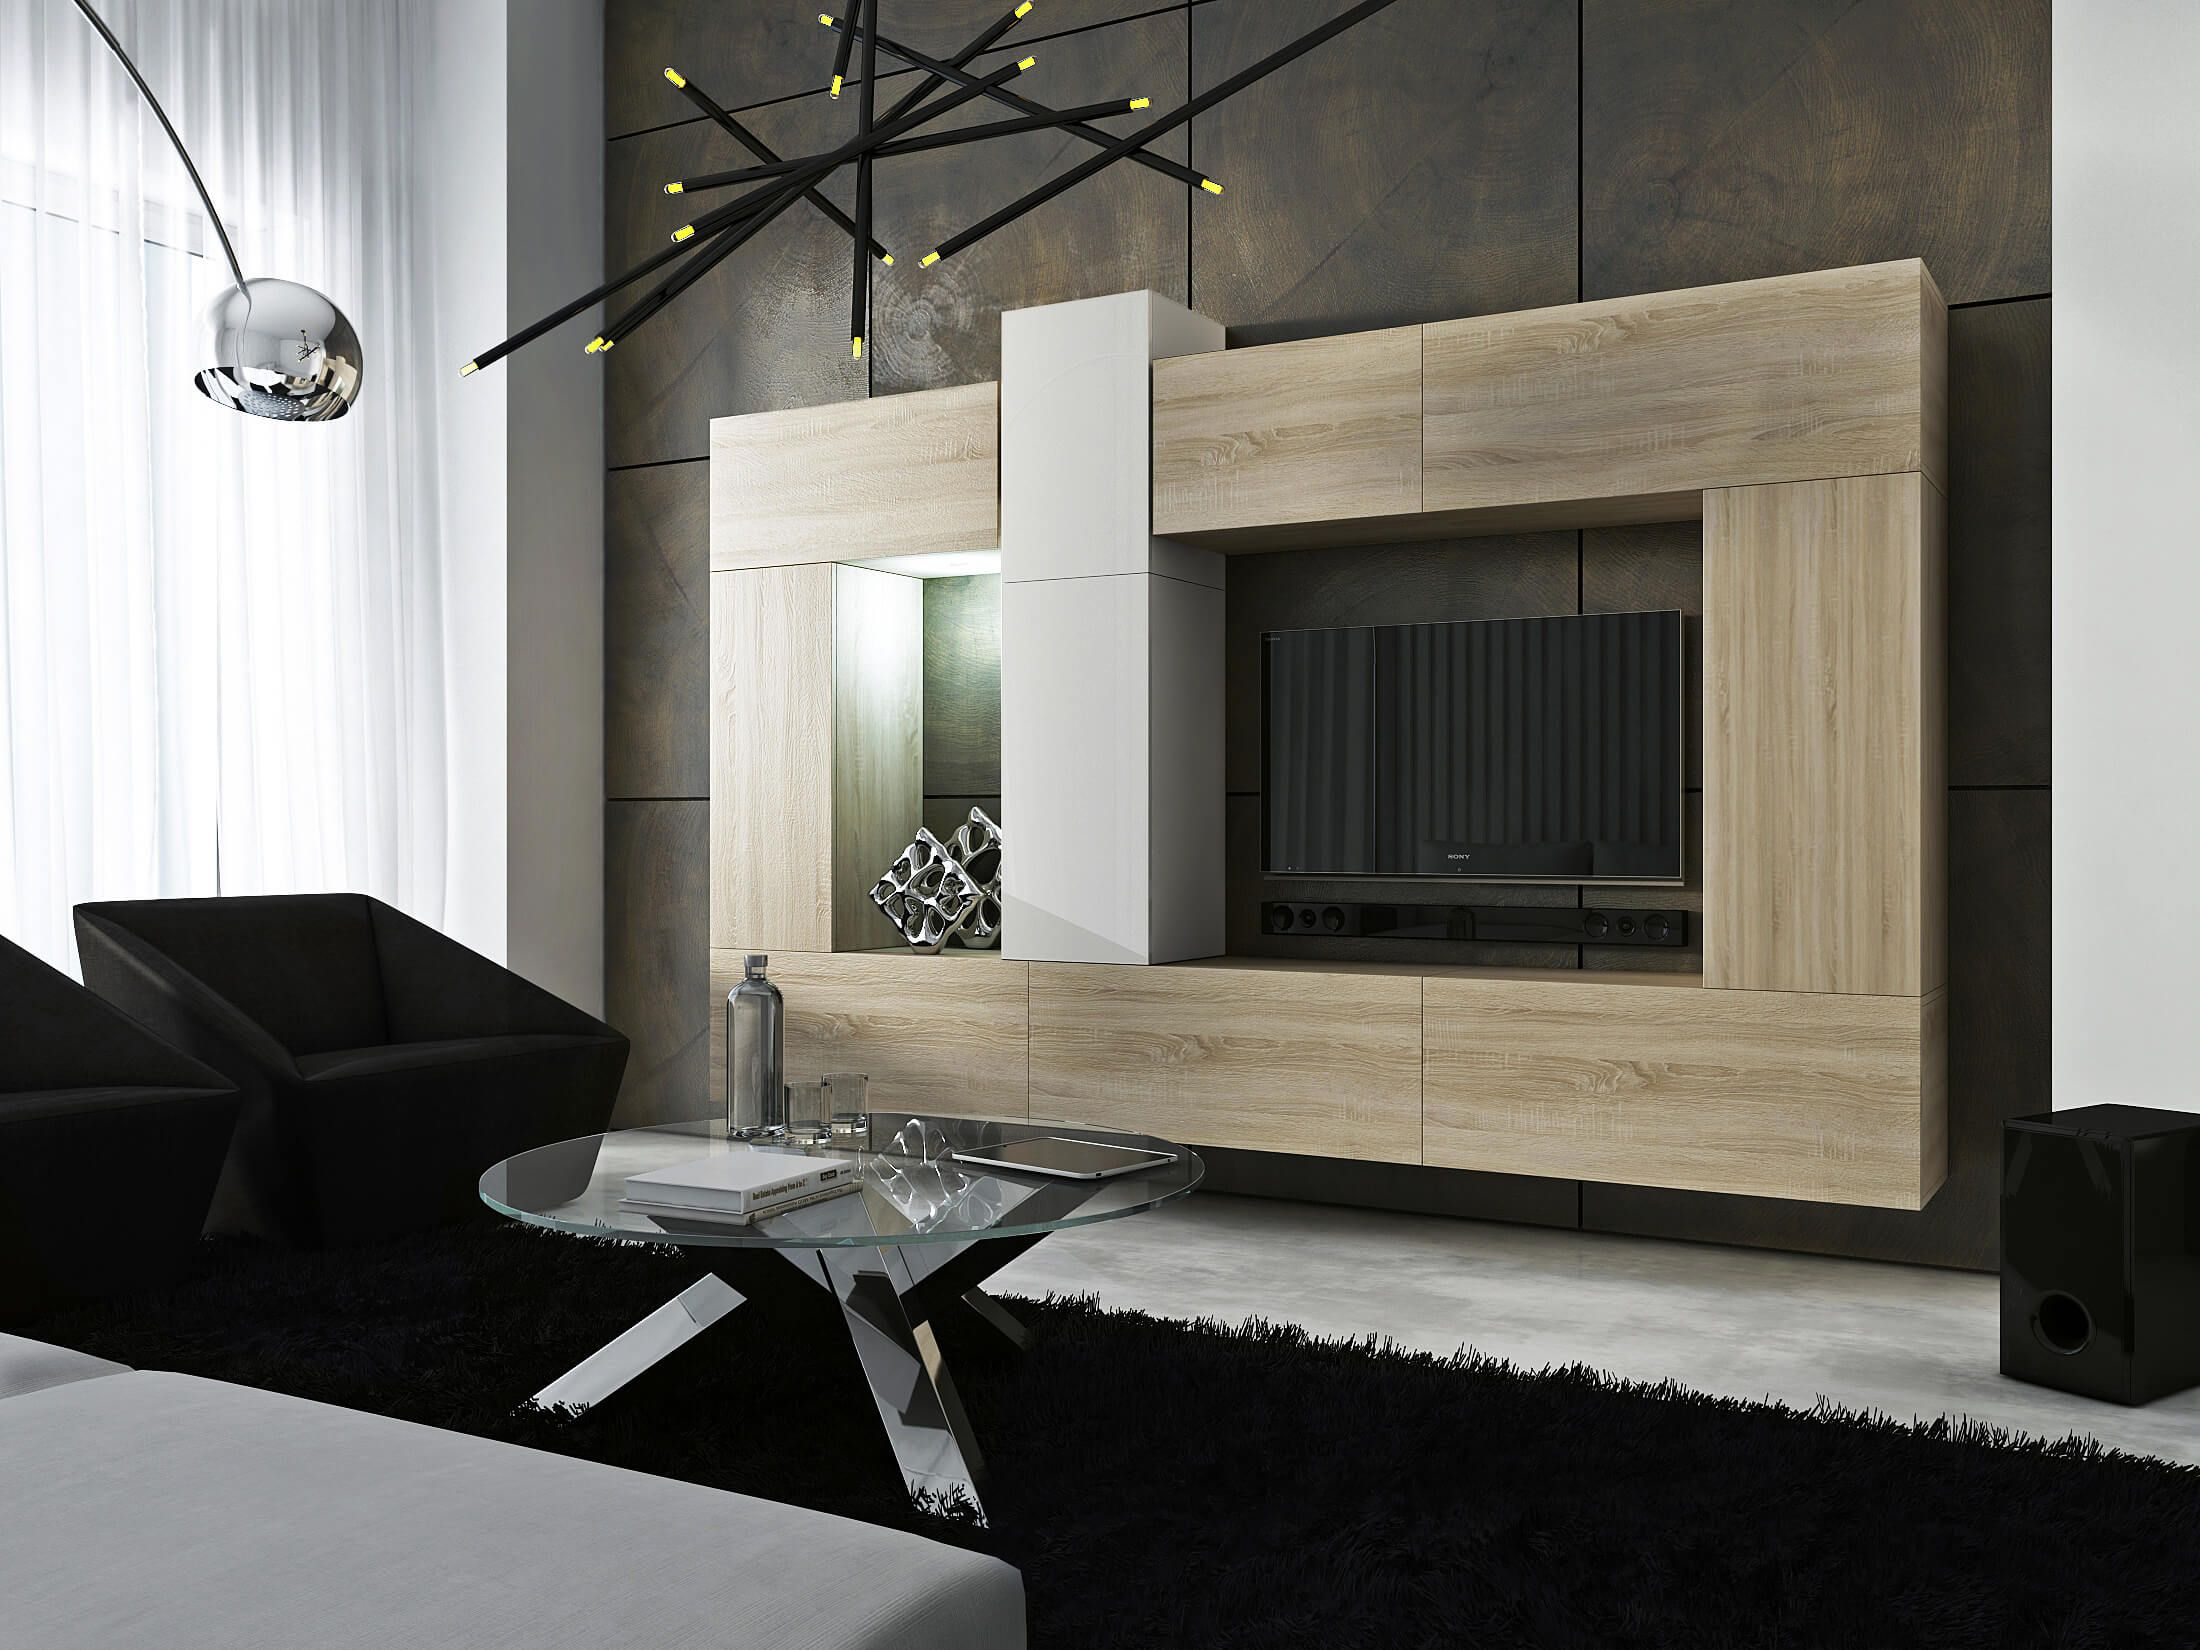 Mueble de sal n size sonoma y blanco prime home espa a for Muebles de salon negros